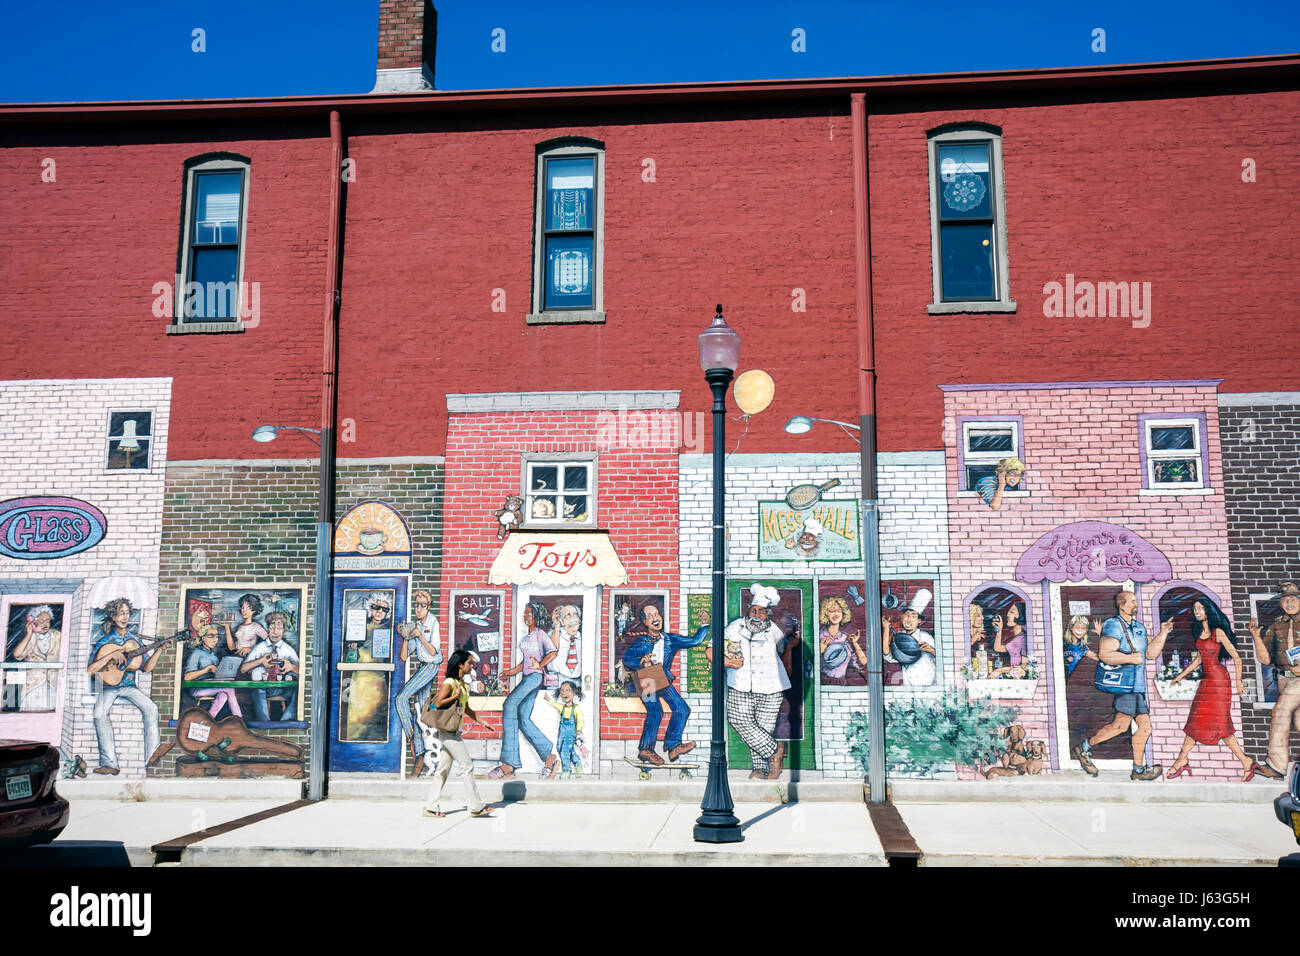 Indiana Valparaiso Michigan Avenue Lifestyles Building mural brick building sidewalk store front shops street art - Stock Image